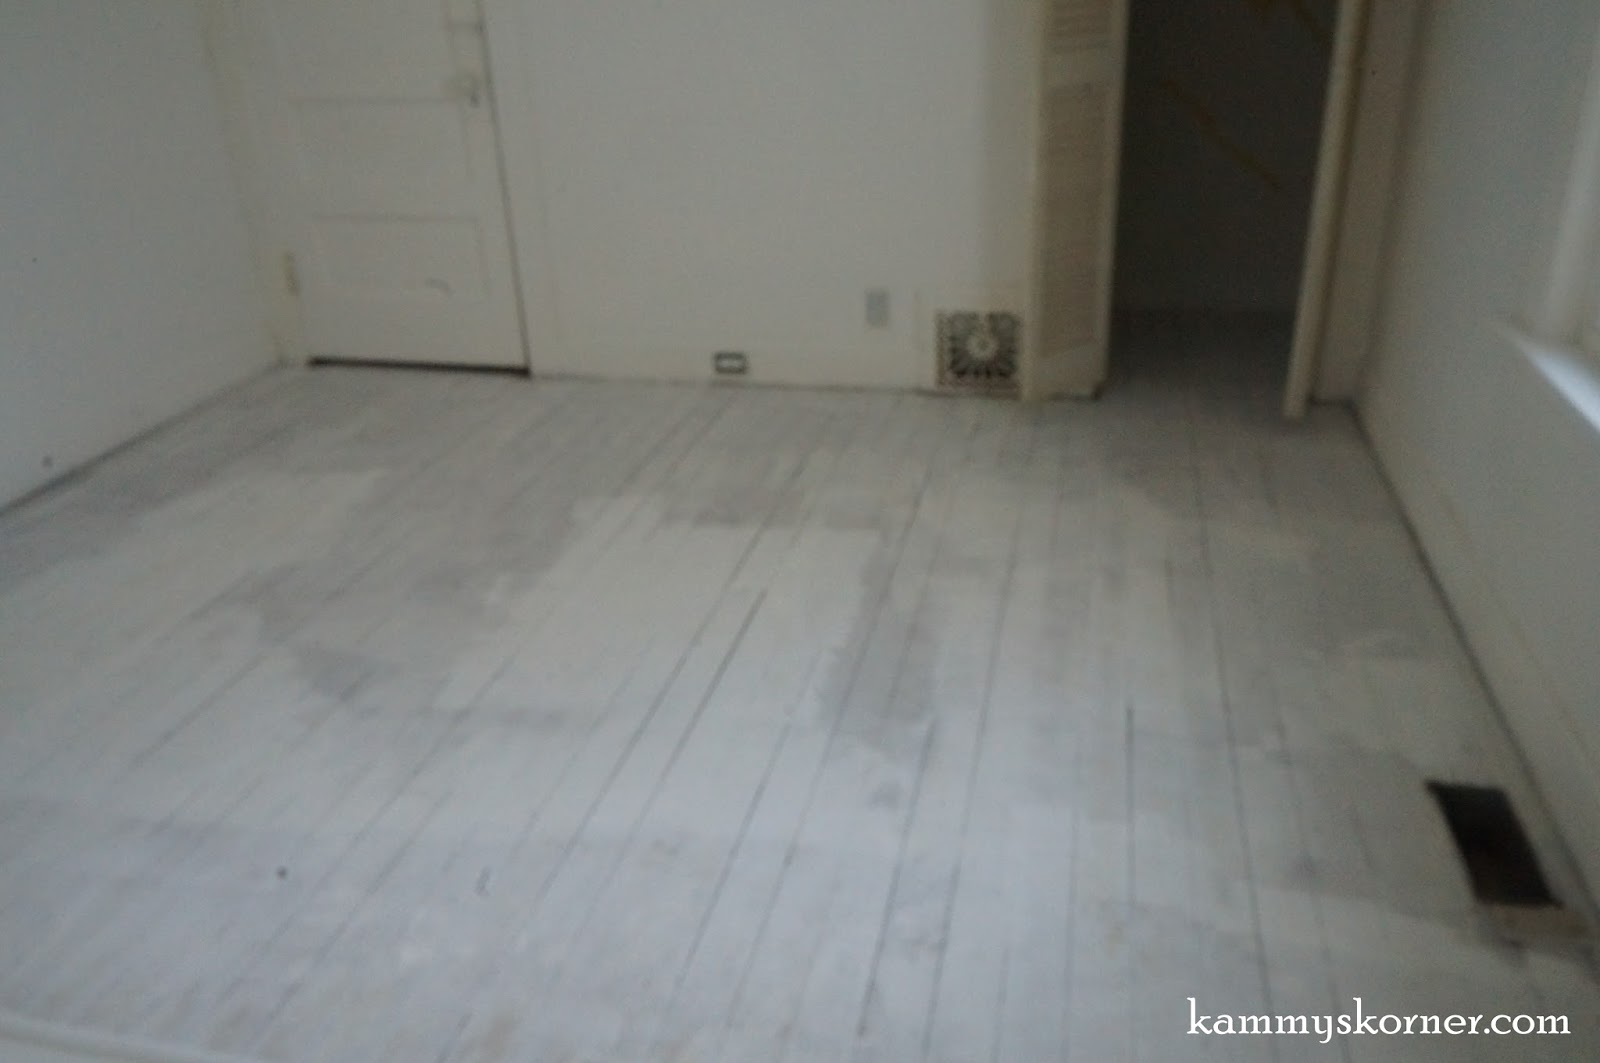 How To Get Paint Primer Off Wood Floors